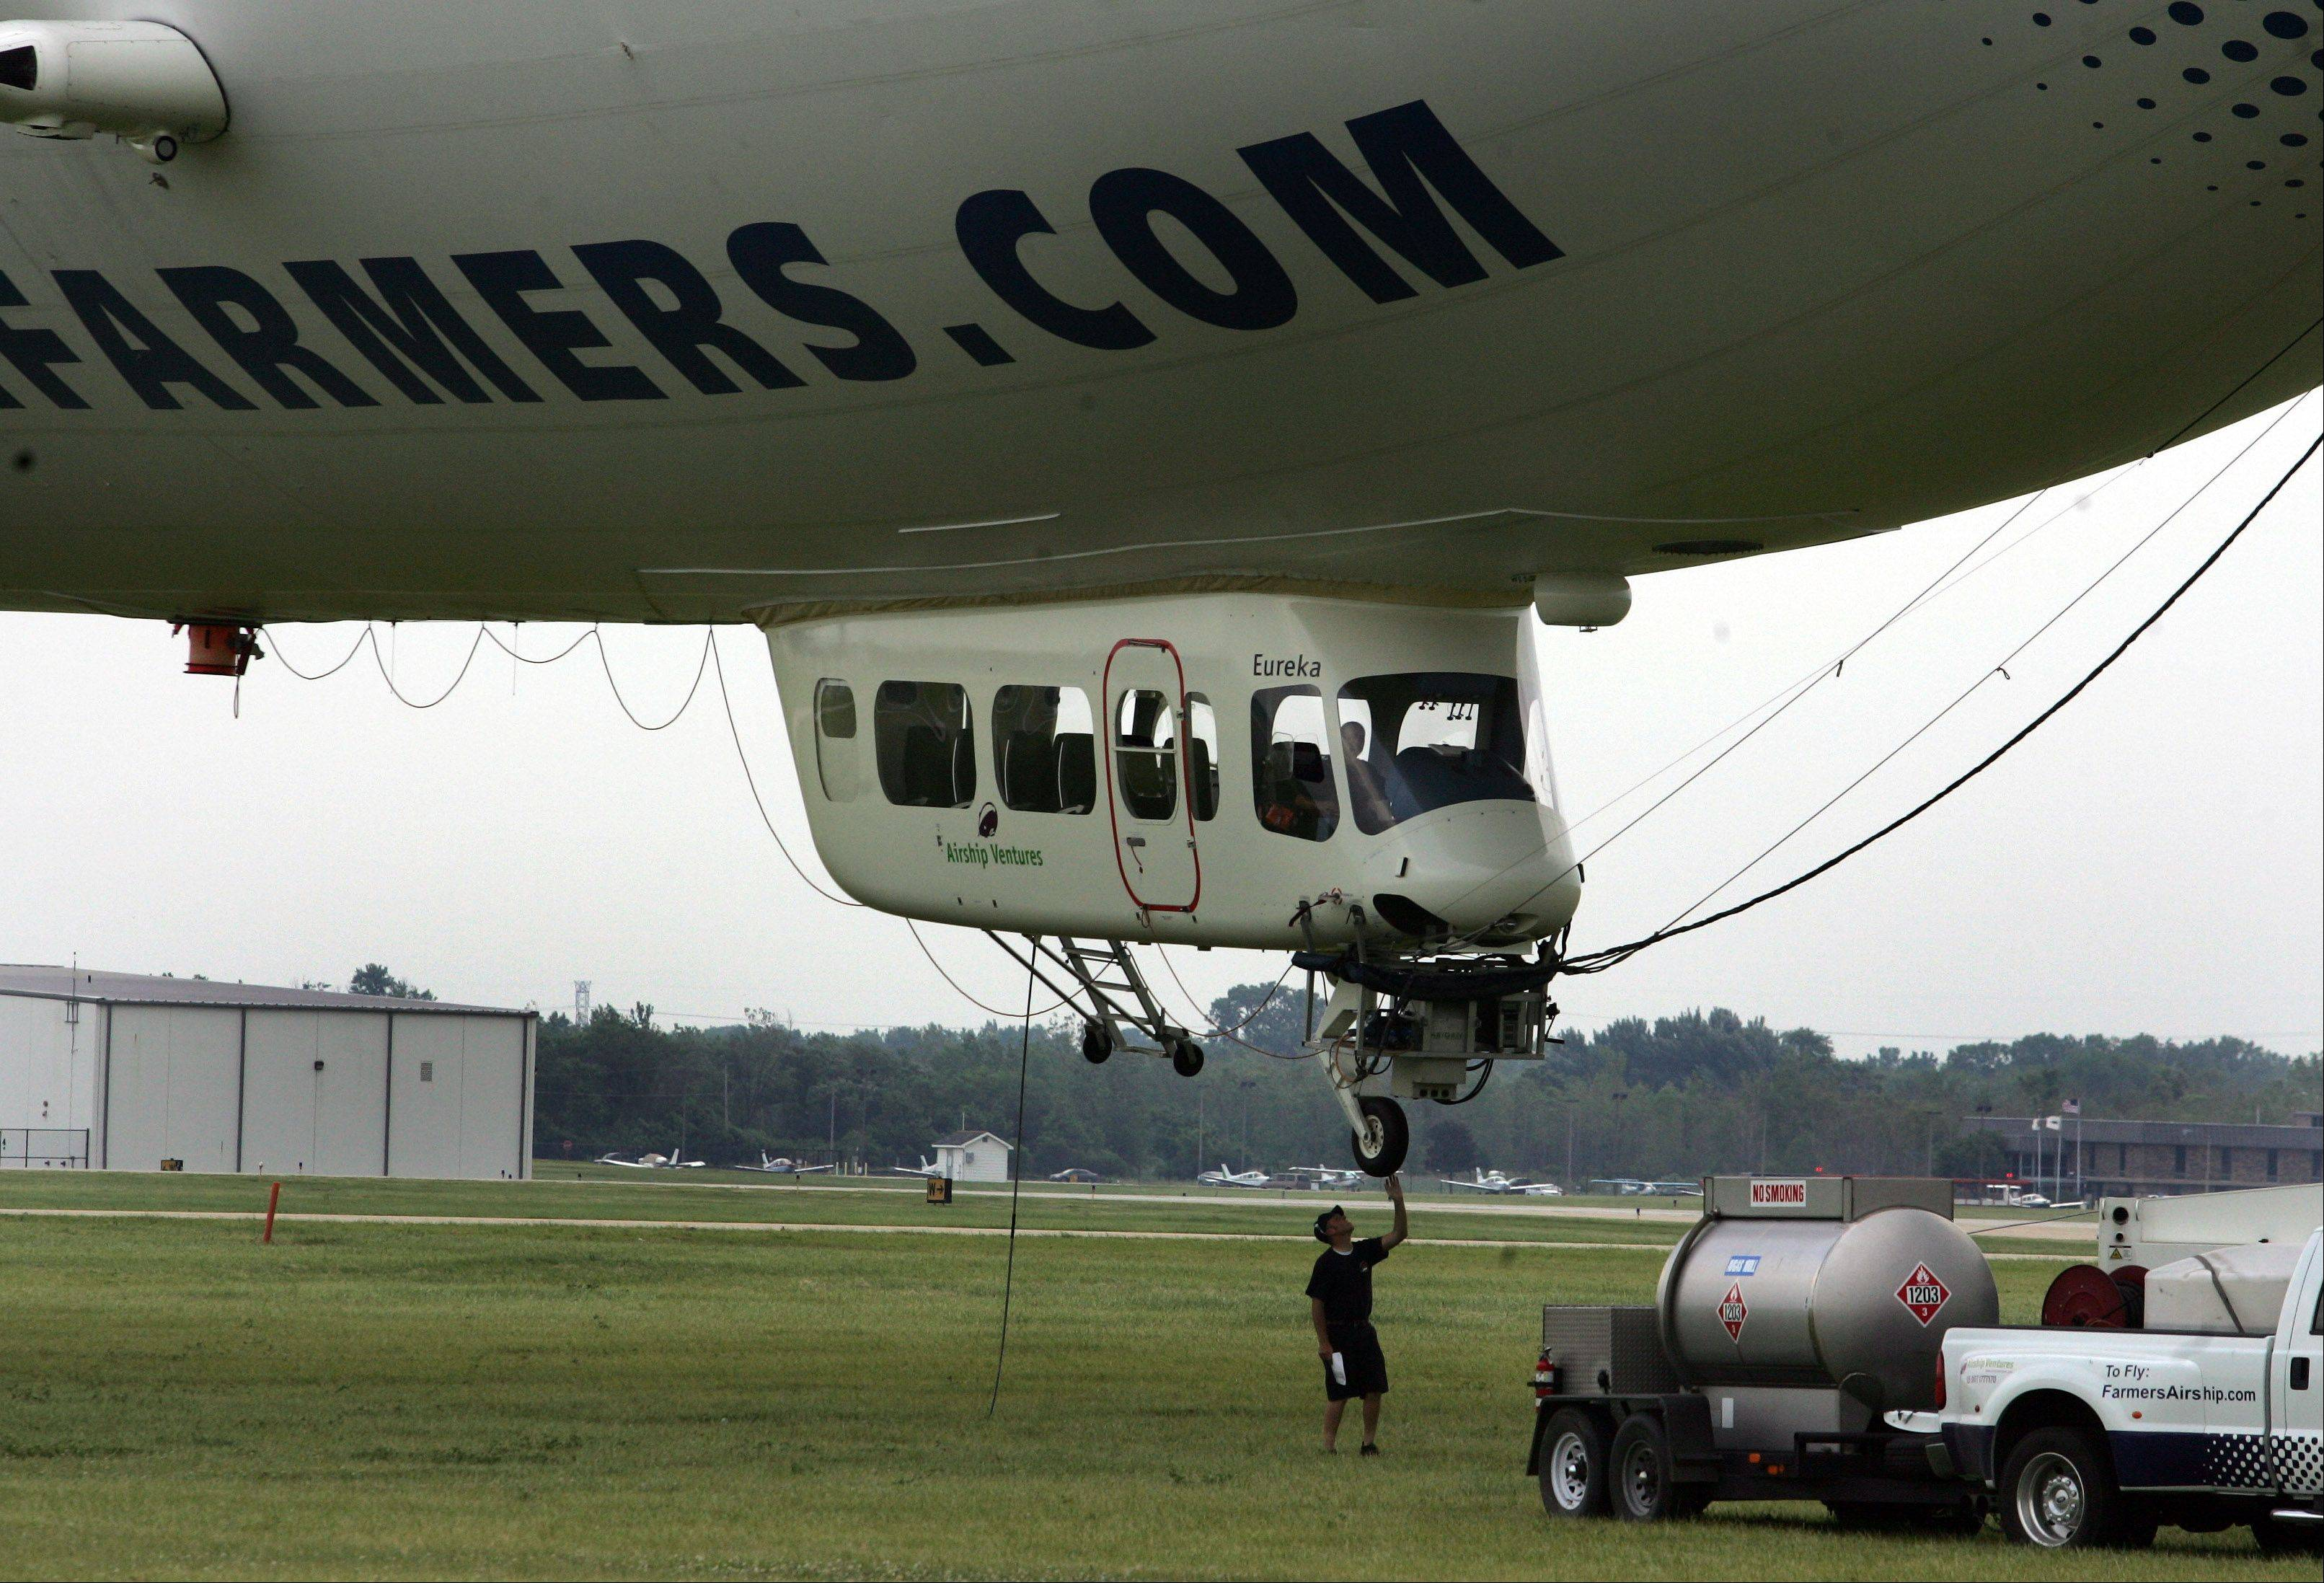 A crew member performs a check on the Farmers Airship, one of only two Zeppelins currently flying globally, as it makes a stop at the DuPage County Airport in West Chicago.